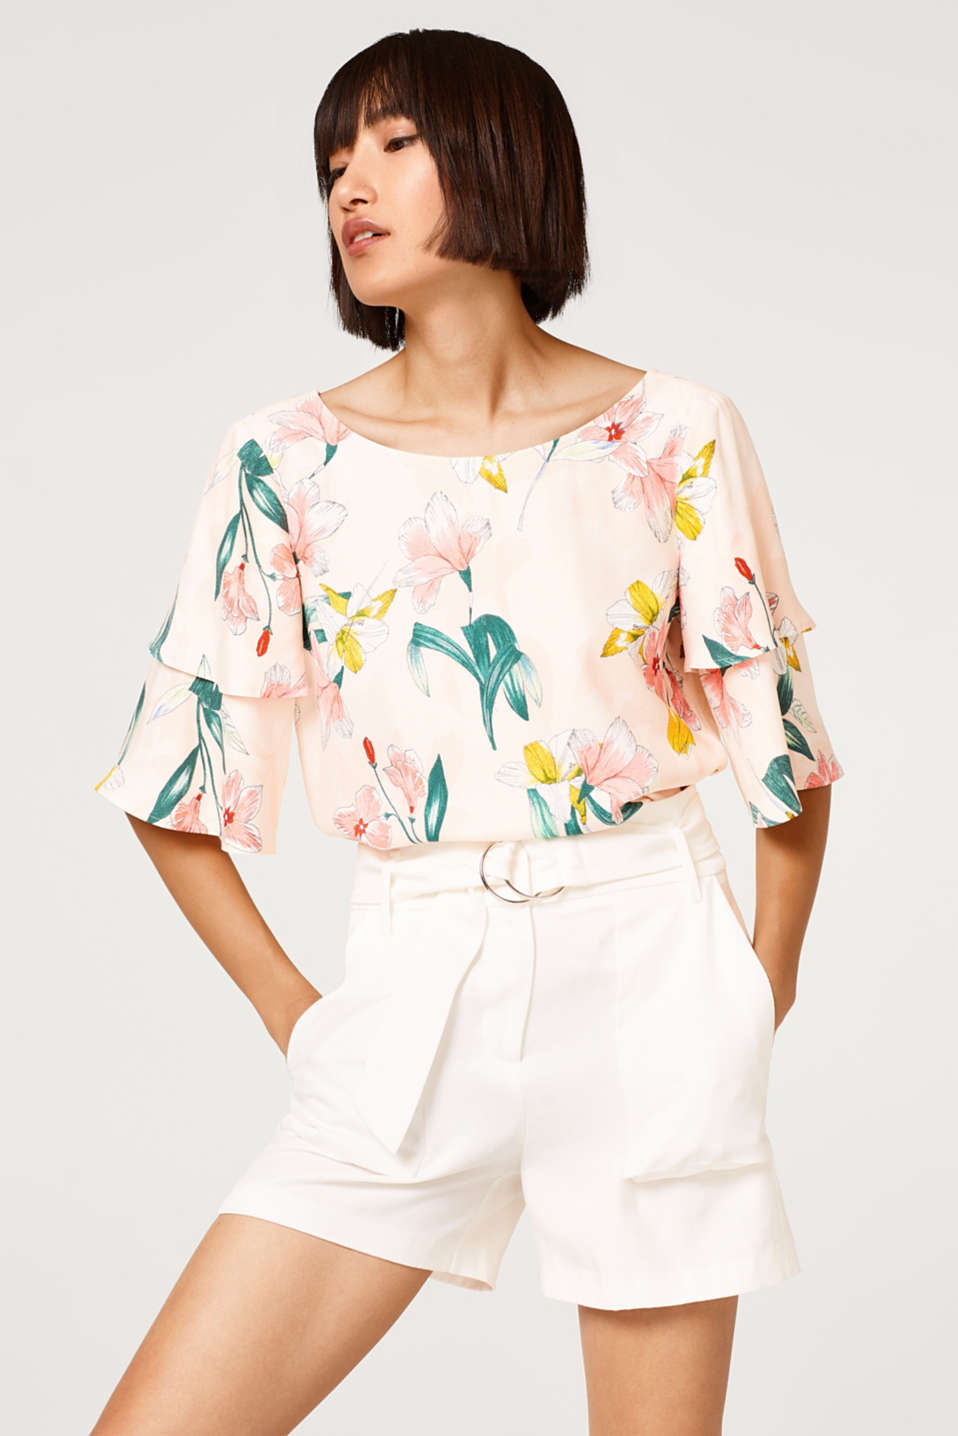 Esprit - Crêpe blouse with a floral print and bow detail